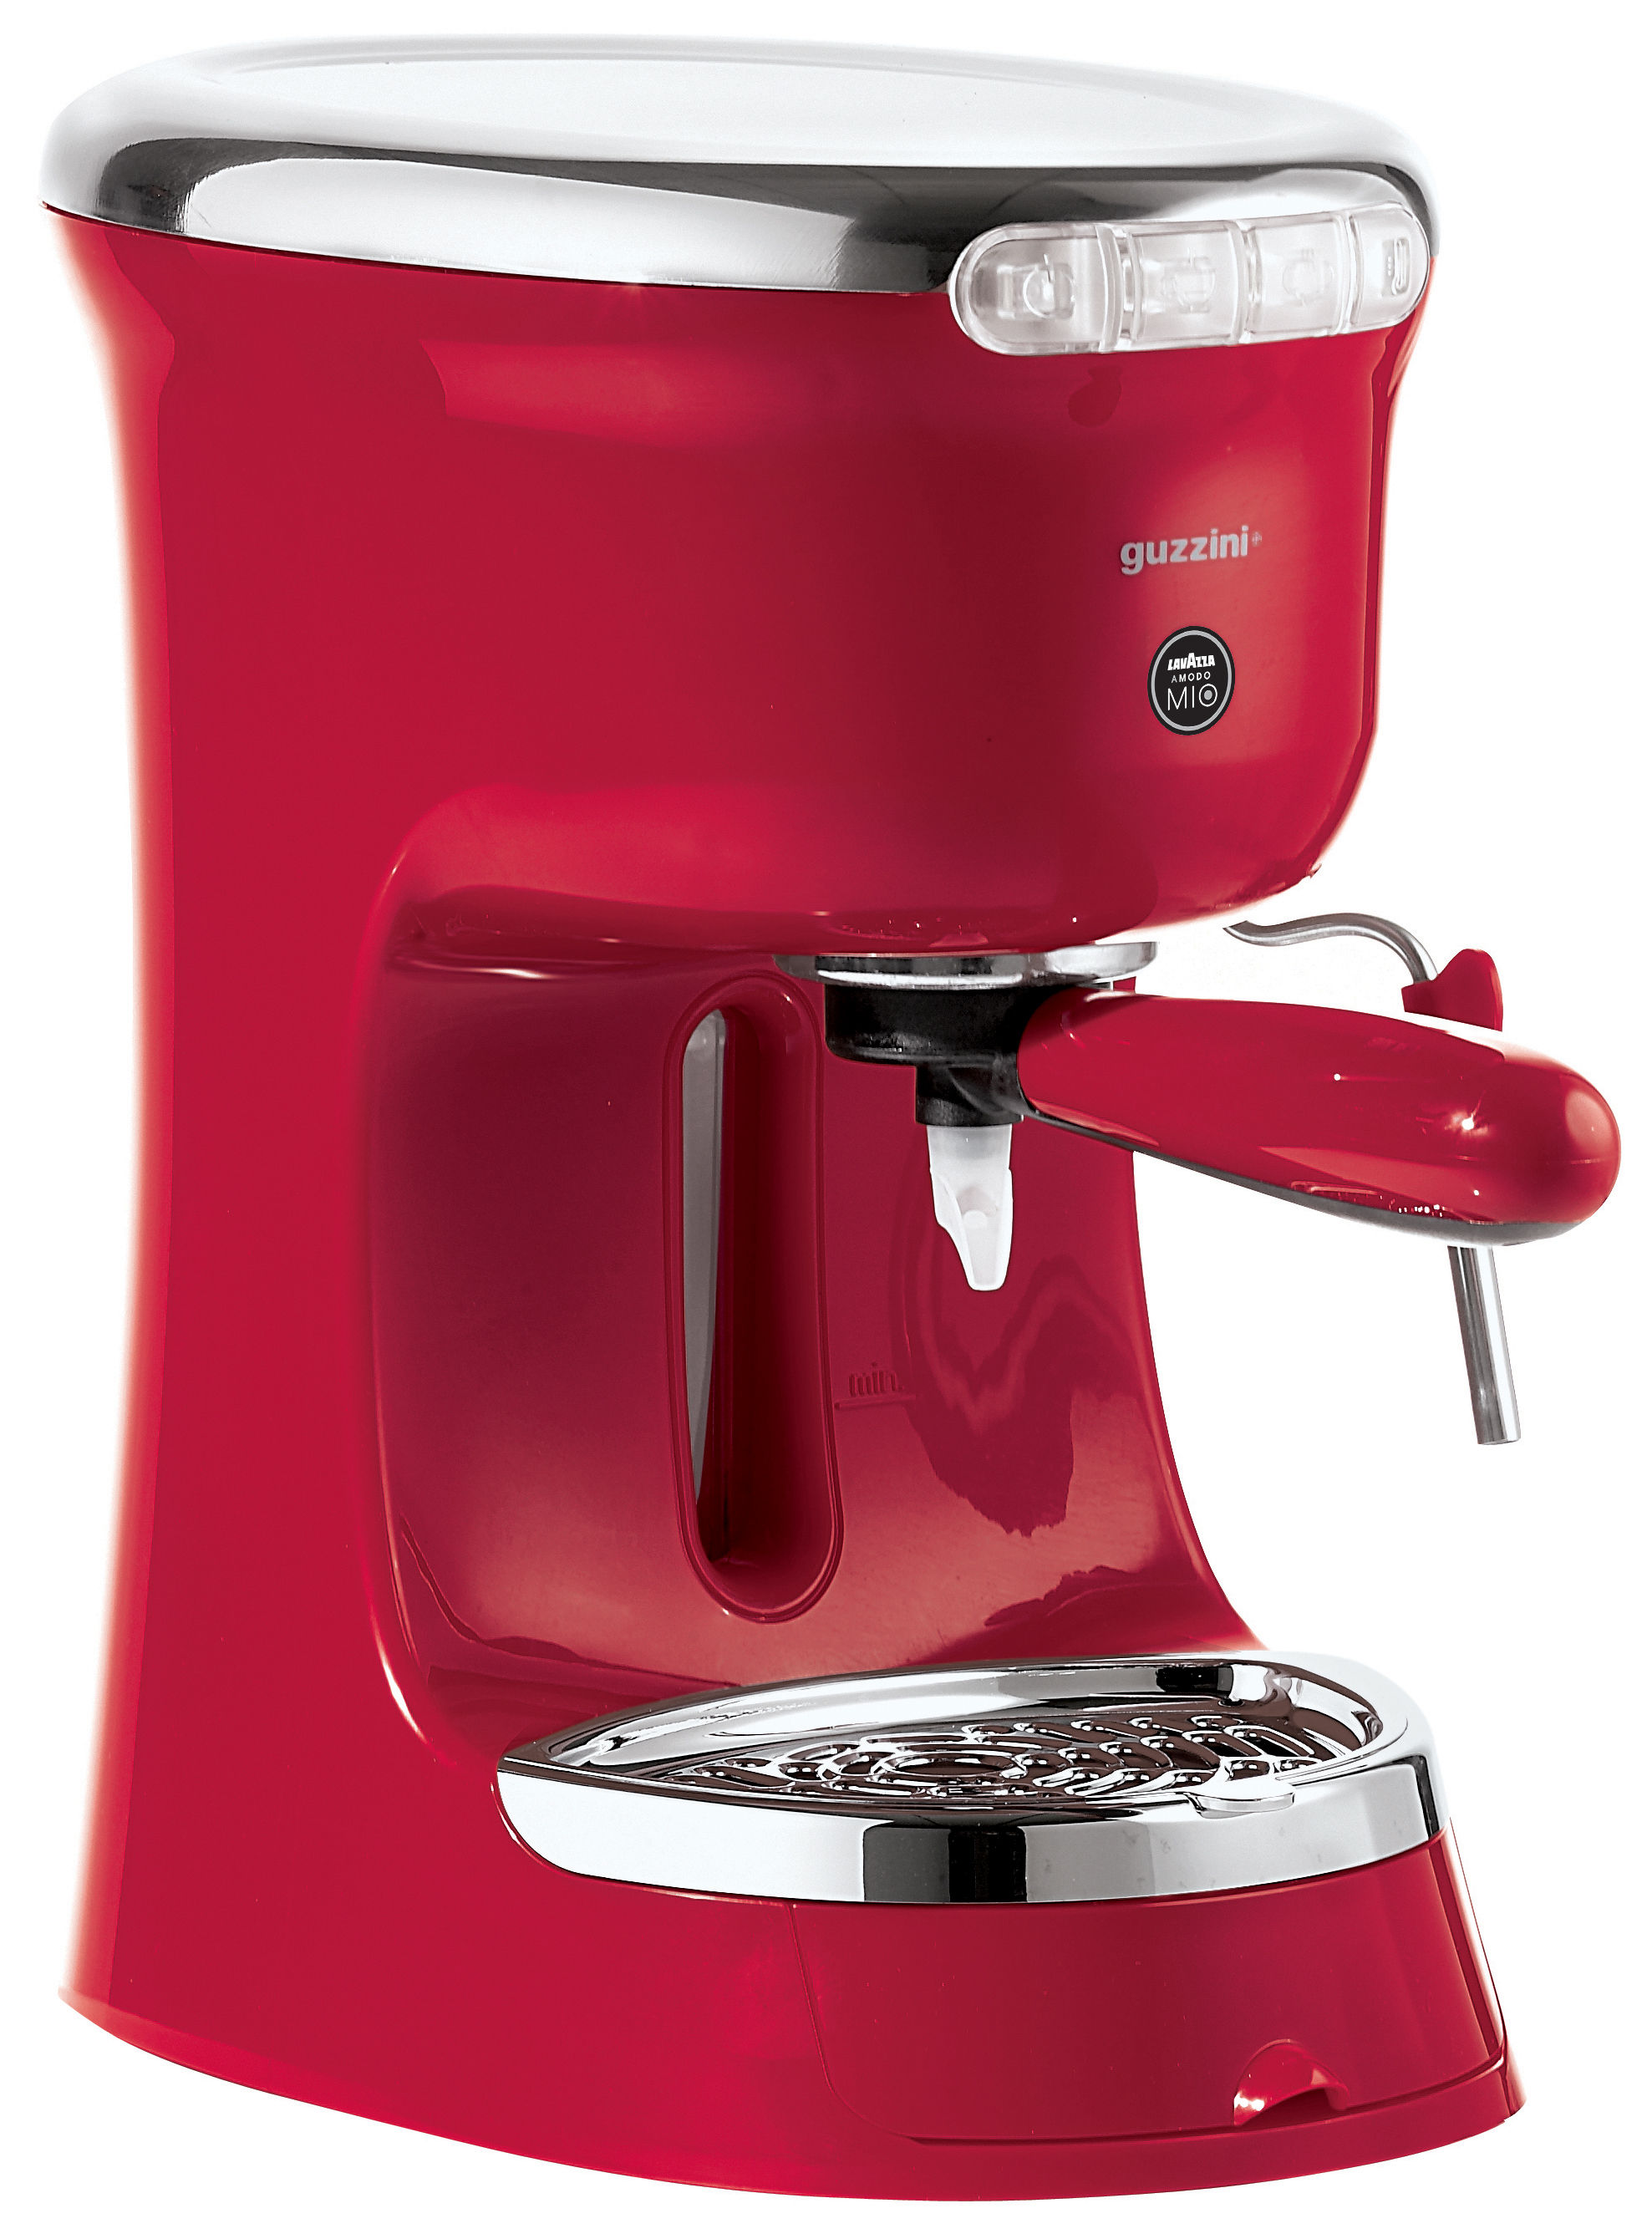 Alessi Electric Espresso Coffee Maker Rs07/Uk : G Plus Electric espresso maker - Espresso coffee machine Red by Guzzini